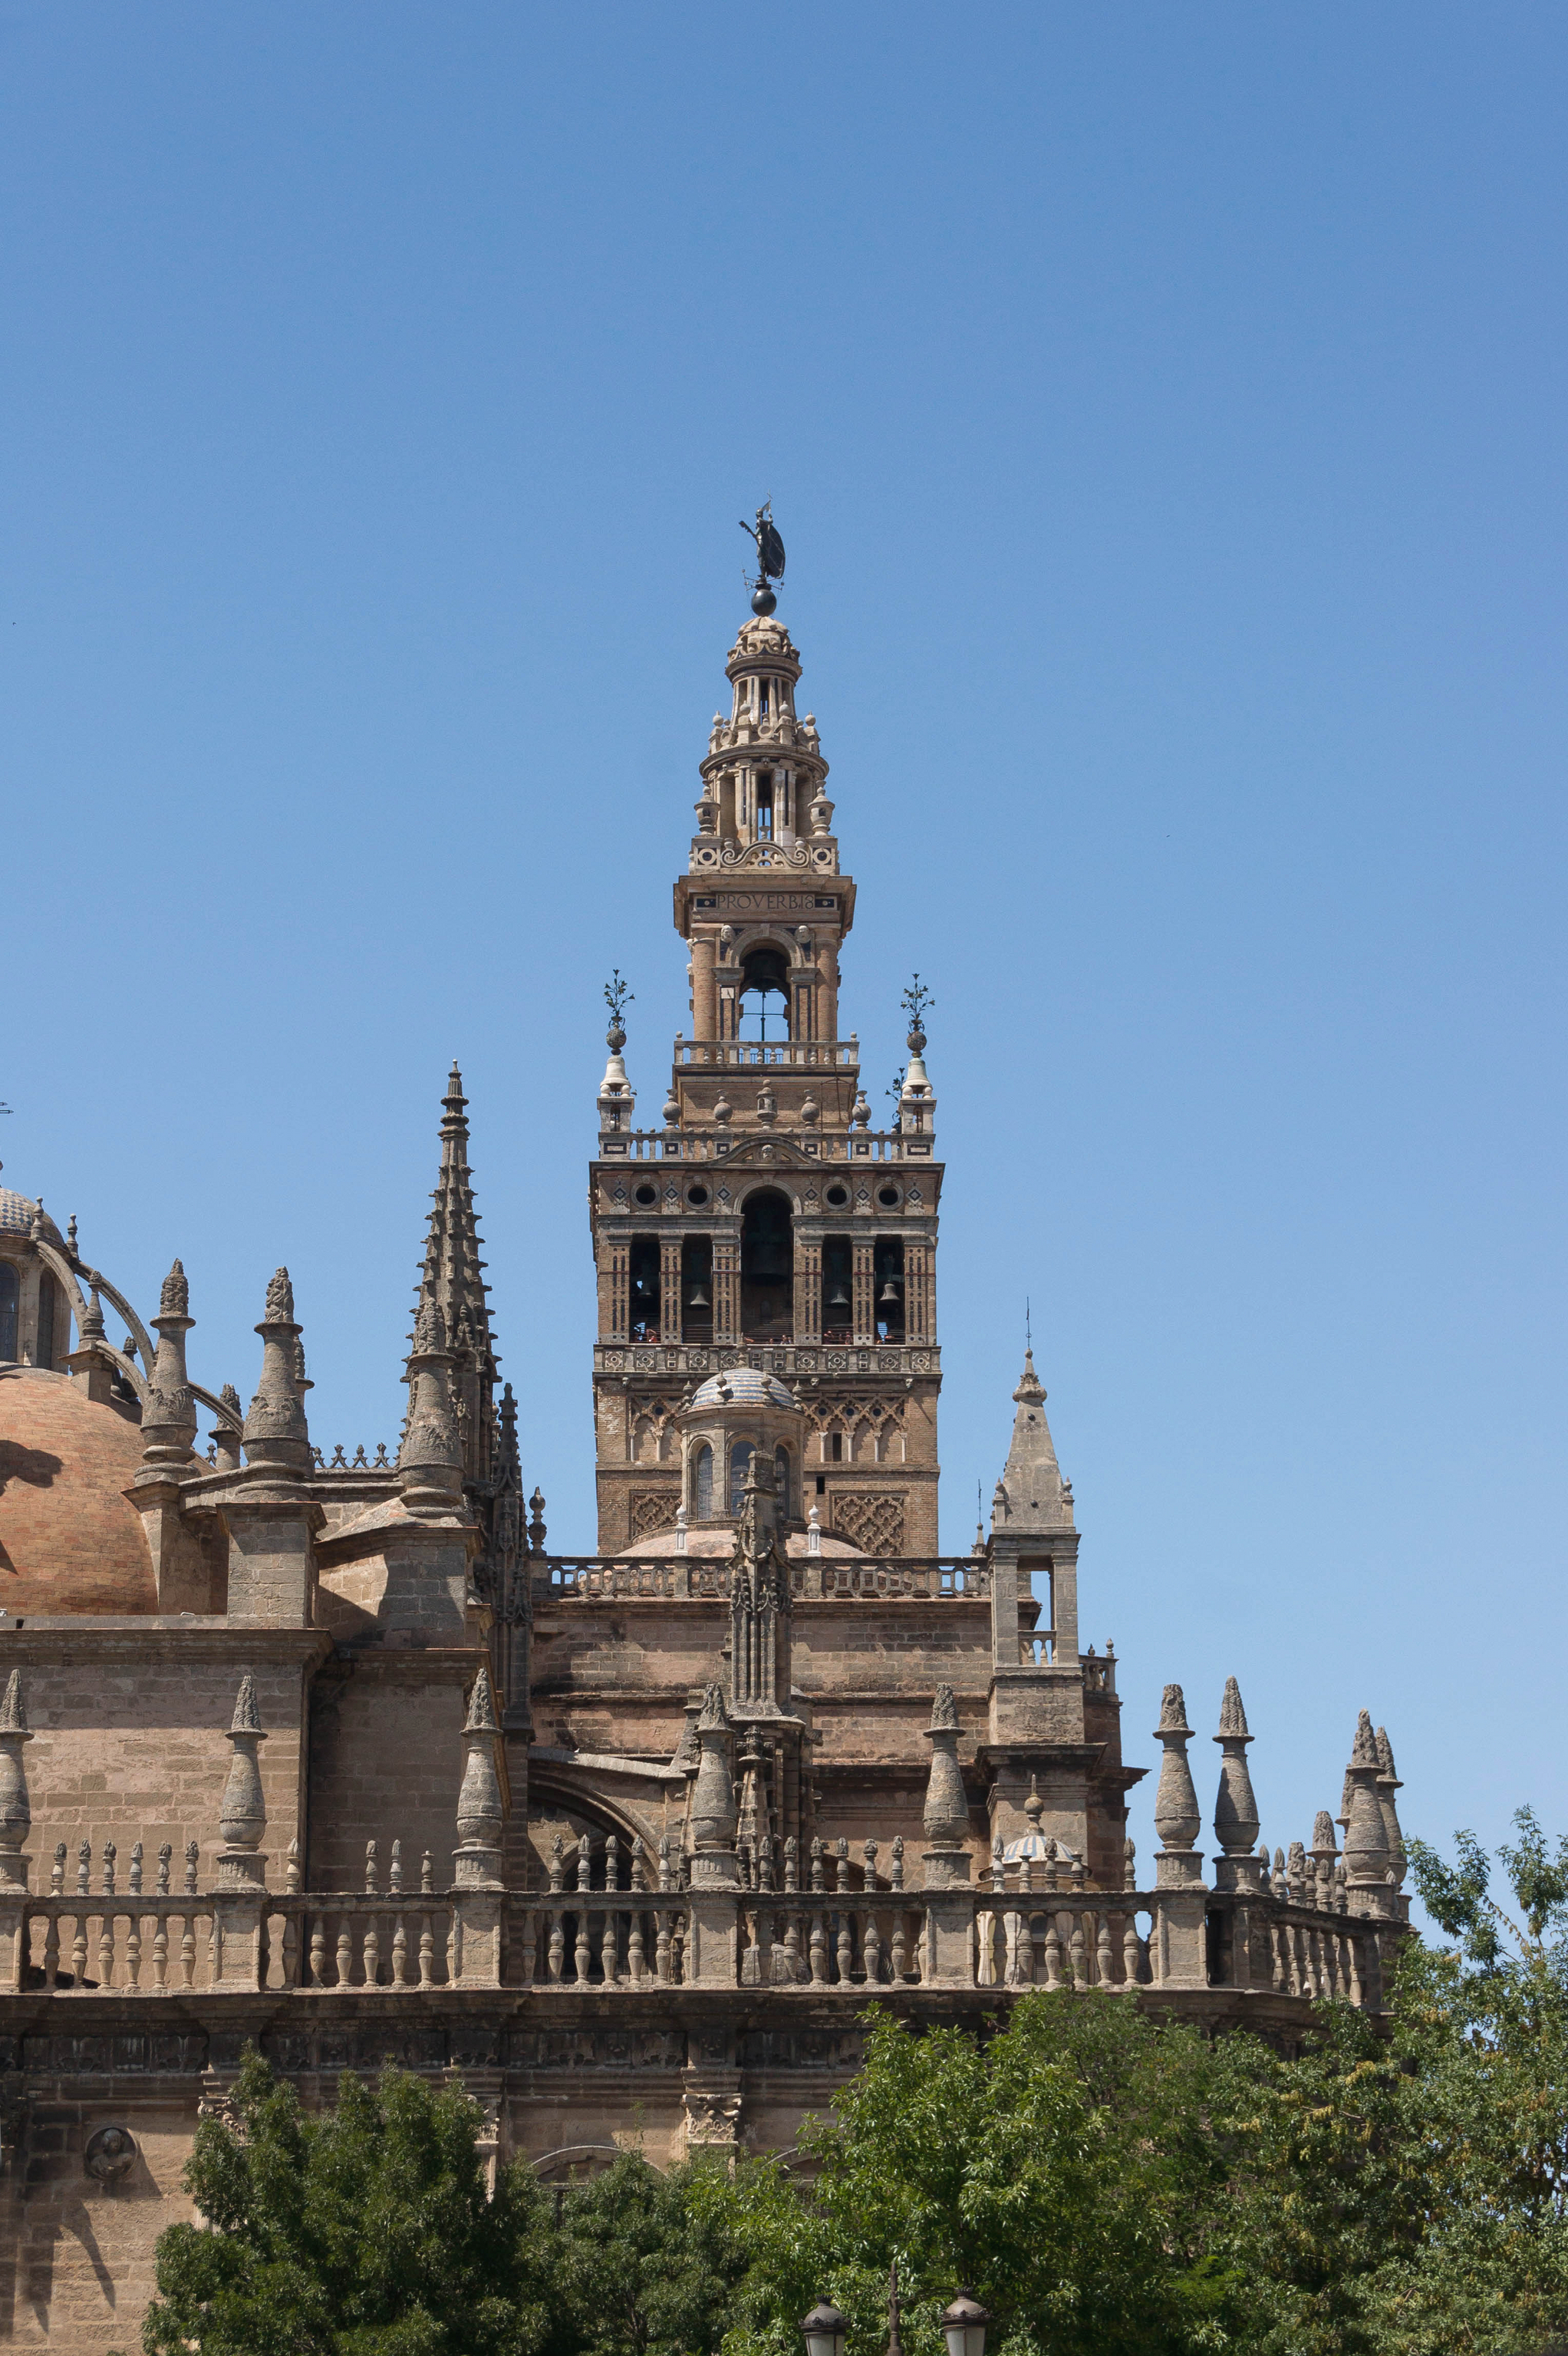 File:Giralda cathedral from Alcazar Seville Spain.jpg - Wikimedia Commons